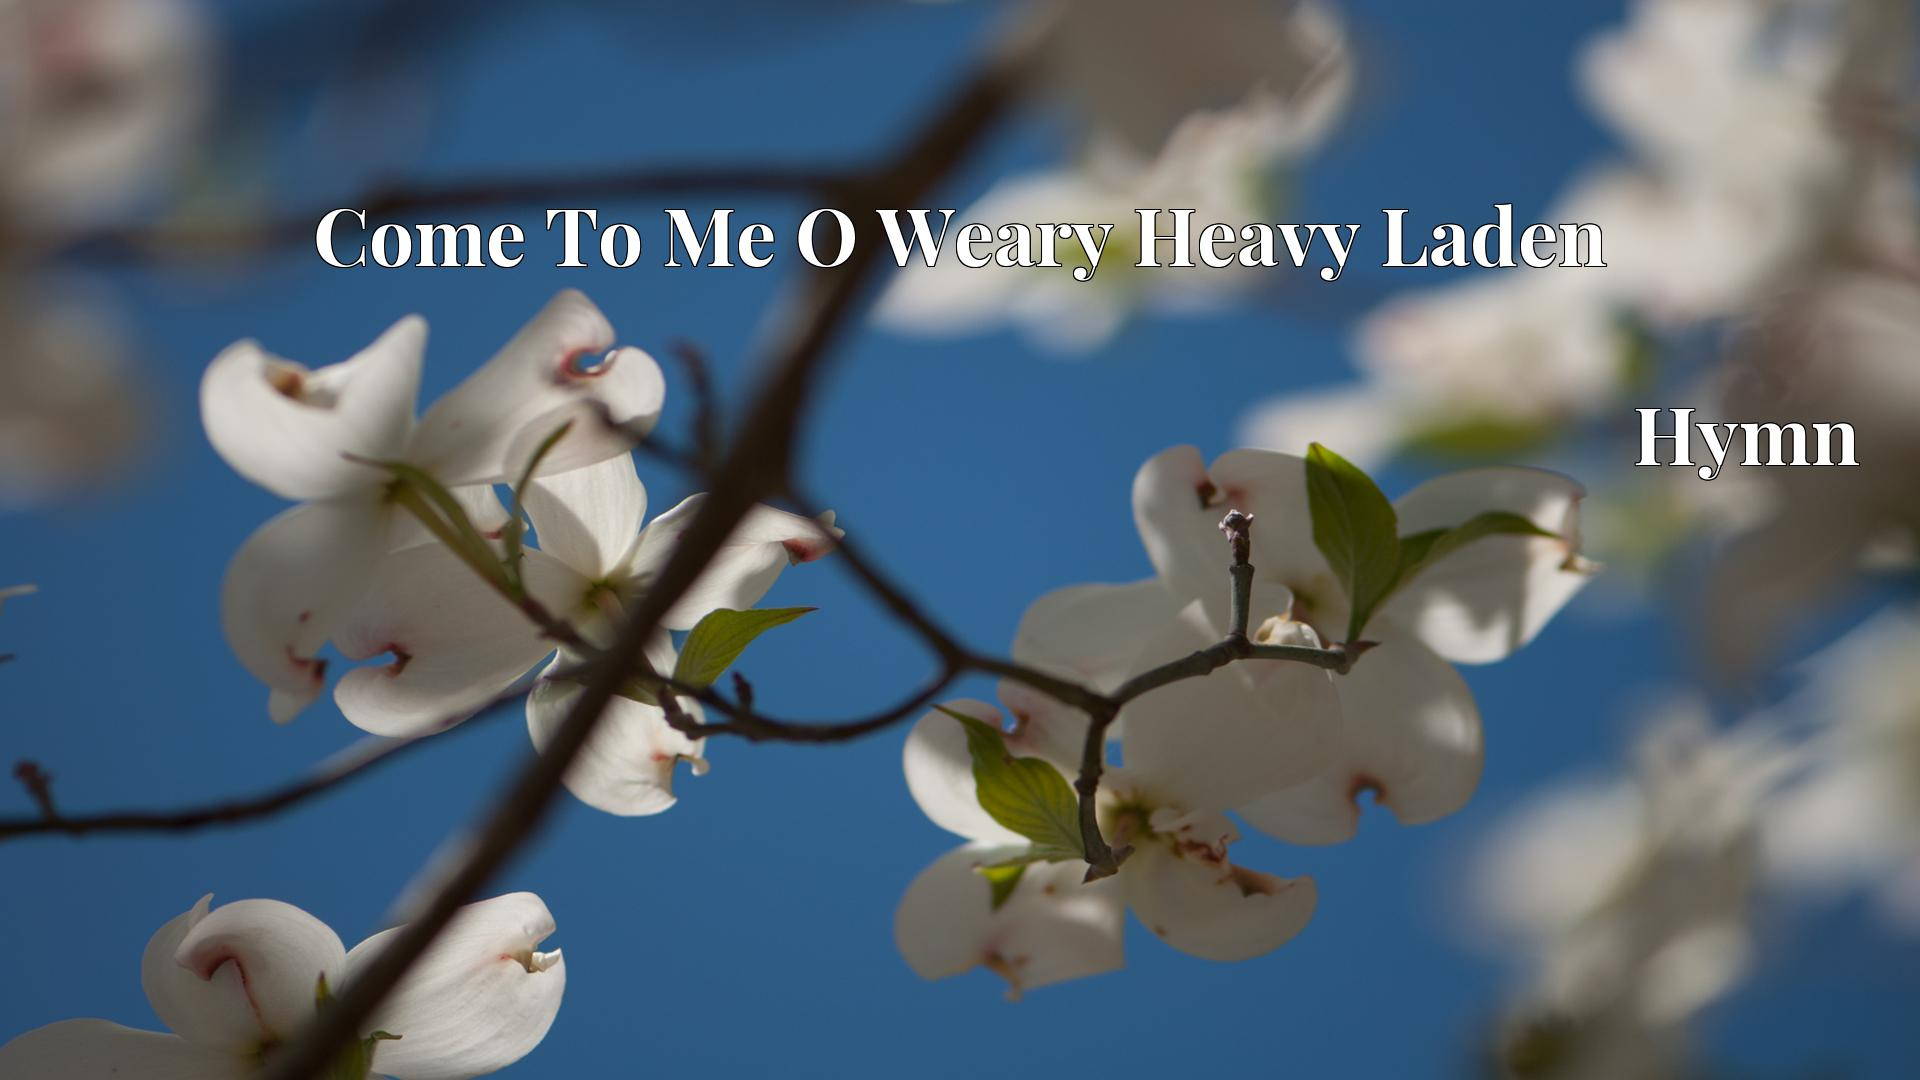 Come To Me O Weary Heavy Laden Hymn Lyric